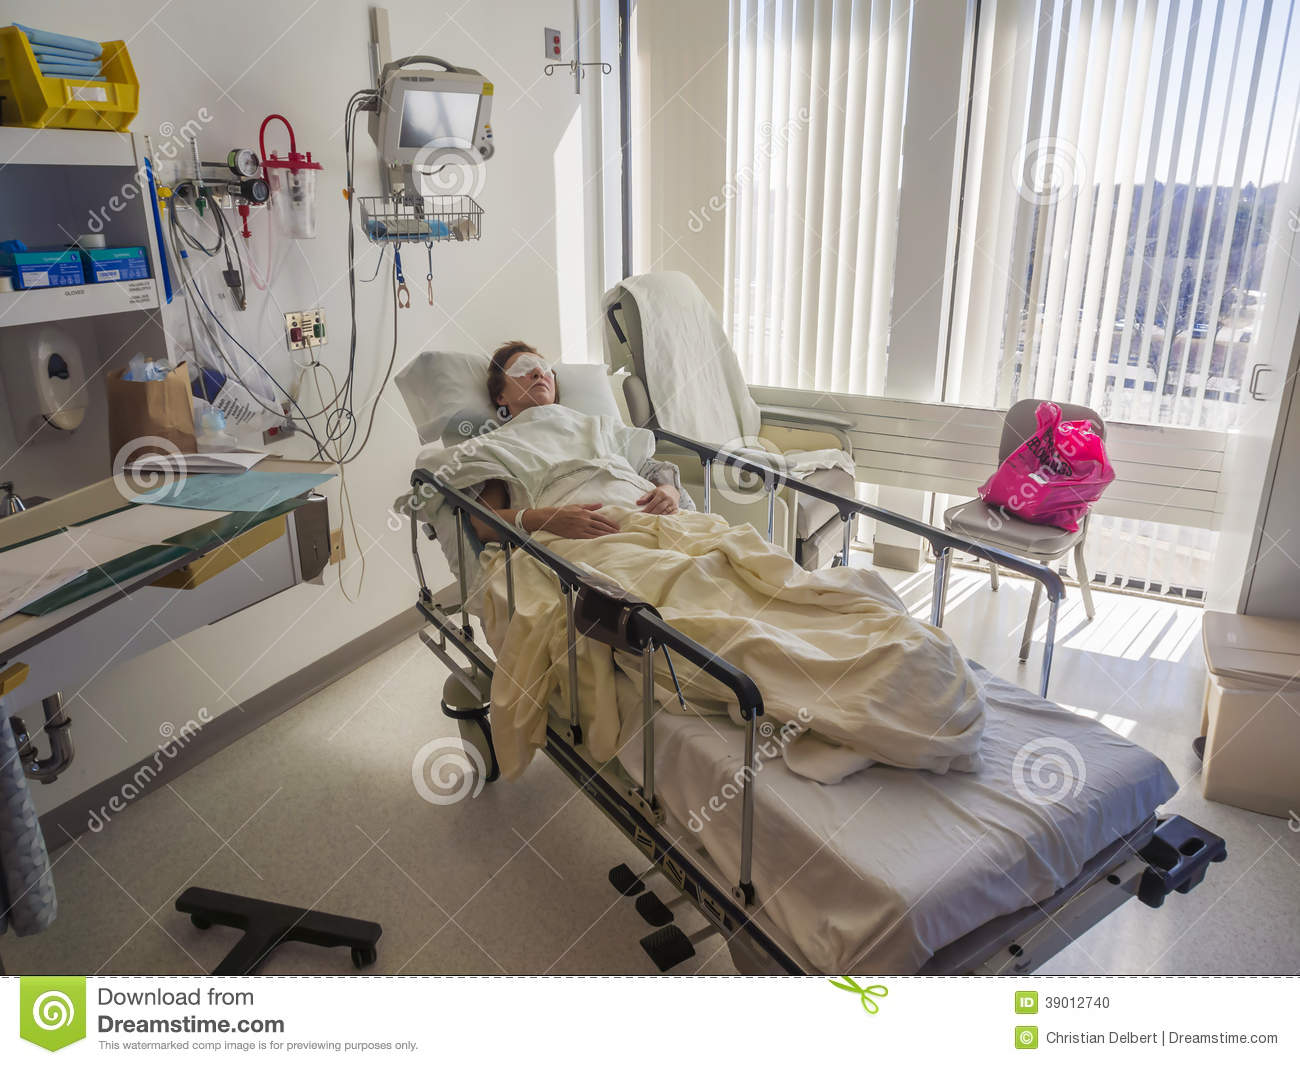 Chambre d 39 h pital et patient photo stock image 39012740 for Chambre hopital